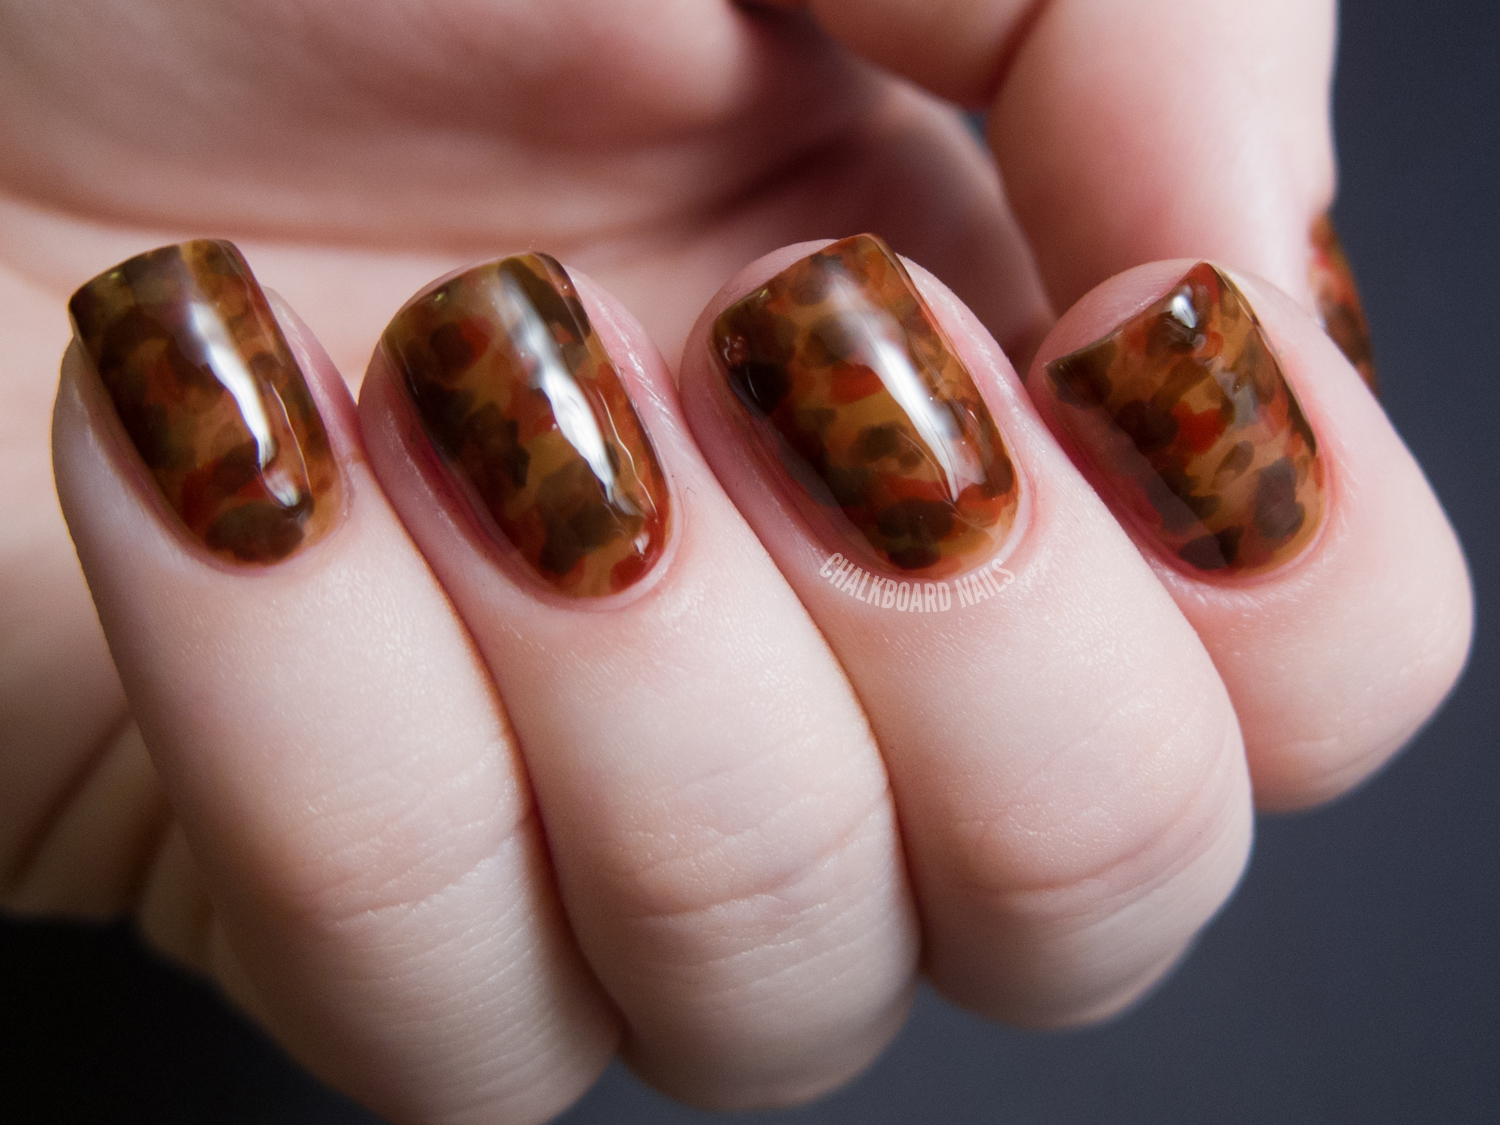 ... my tortoiseshell nail art. Here's the final product from the video